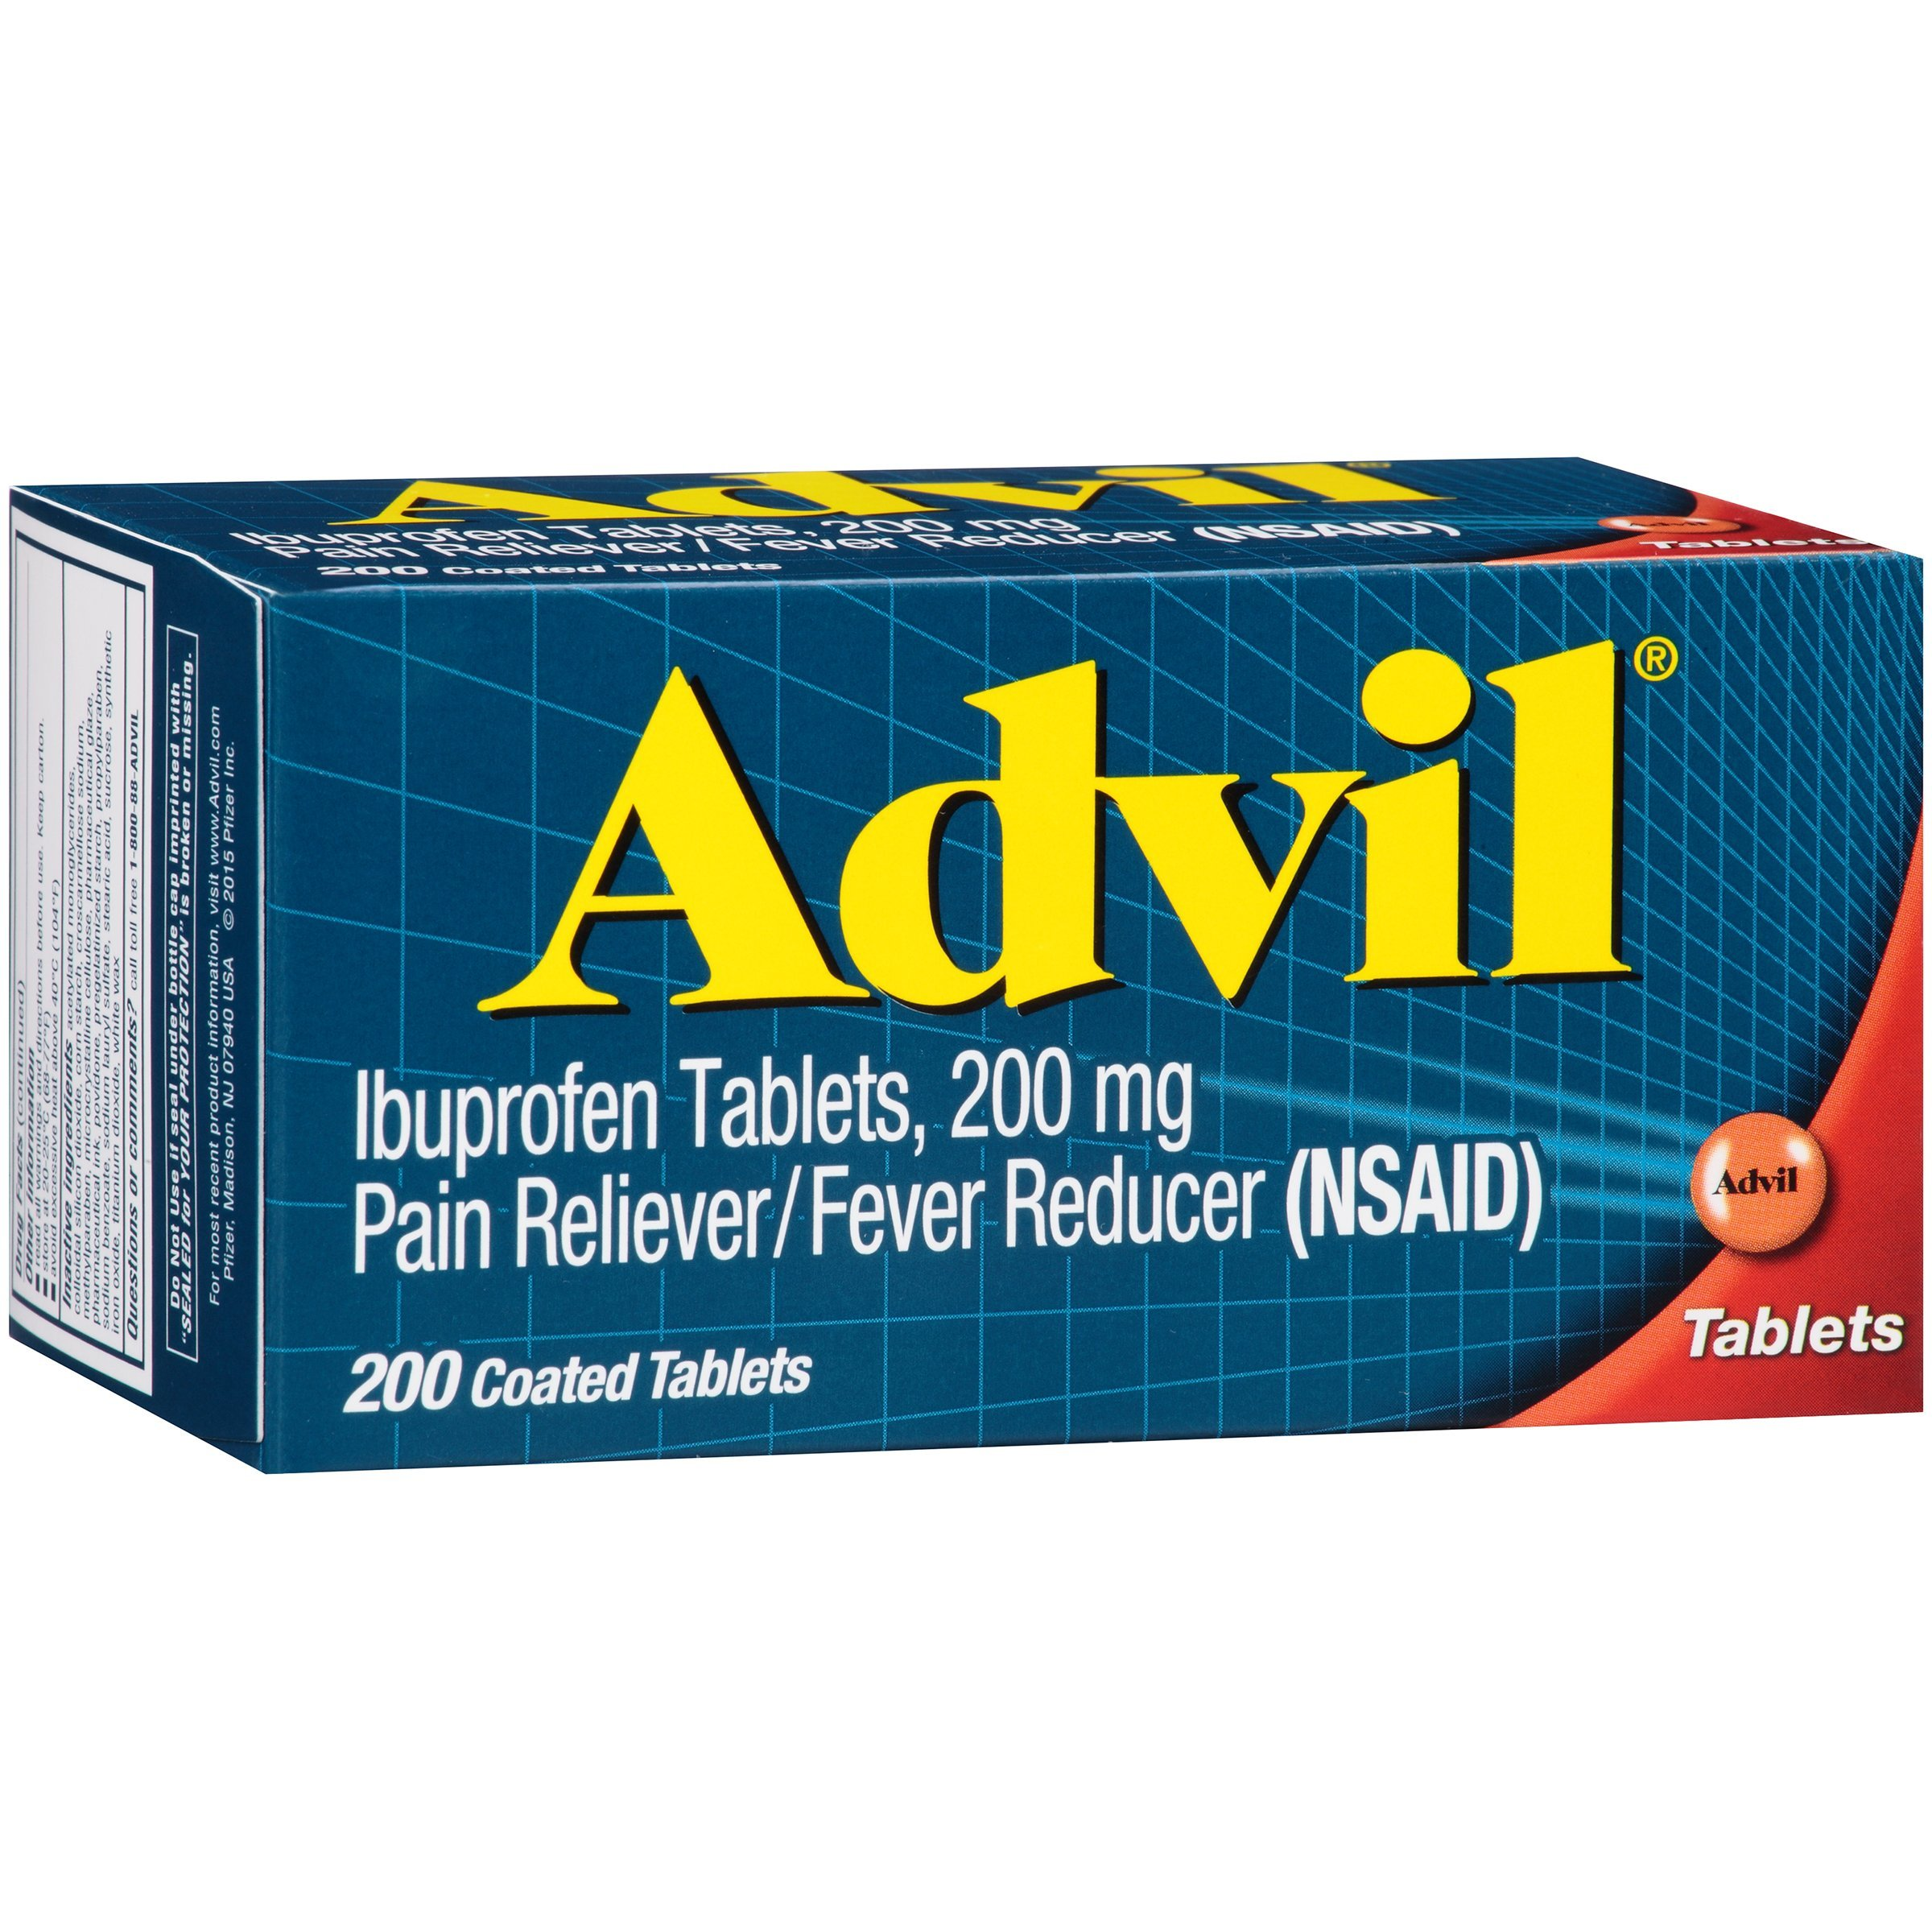 Advil (200 Count) Pain Reliever / Fever Reducer Coated Tablet, 200mg Ibuprofen, Temporary Pain Relief by Advil